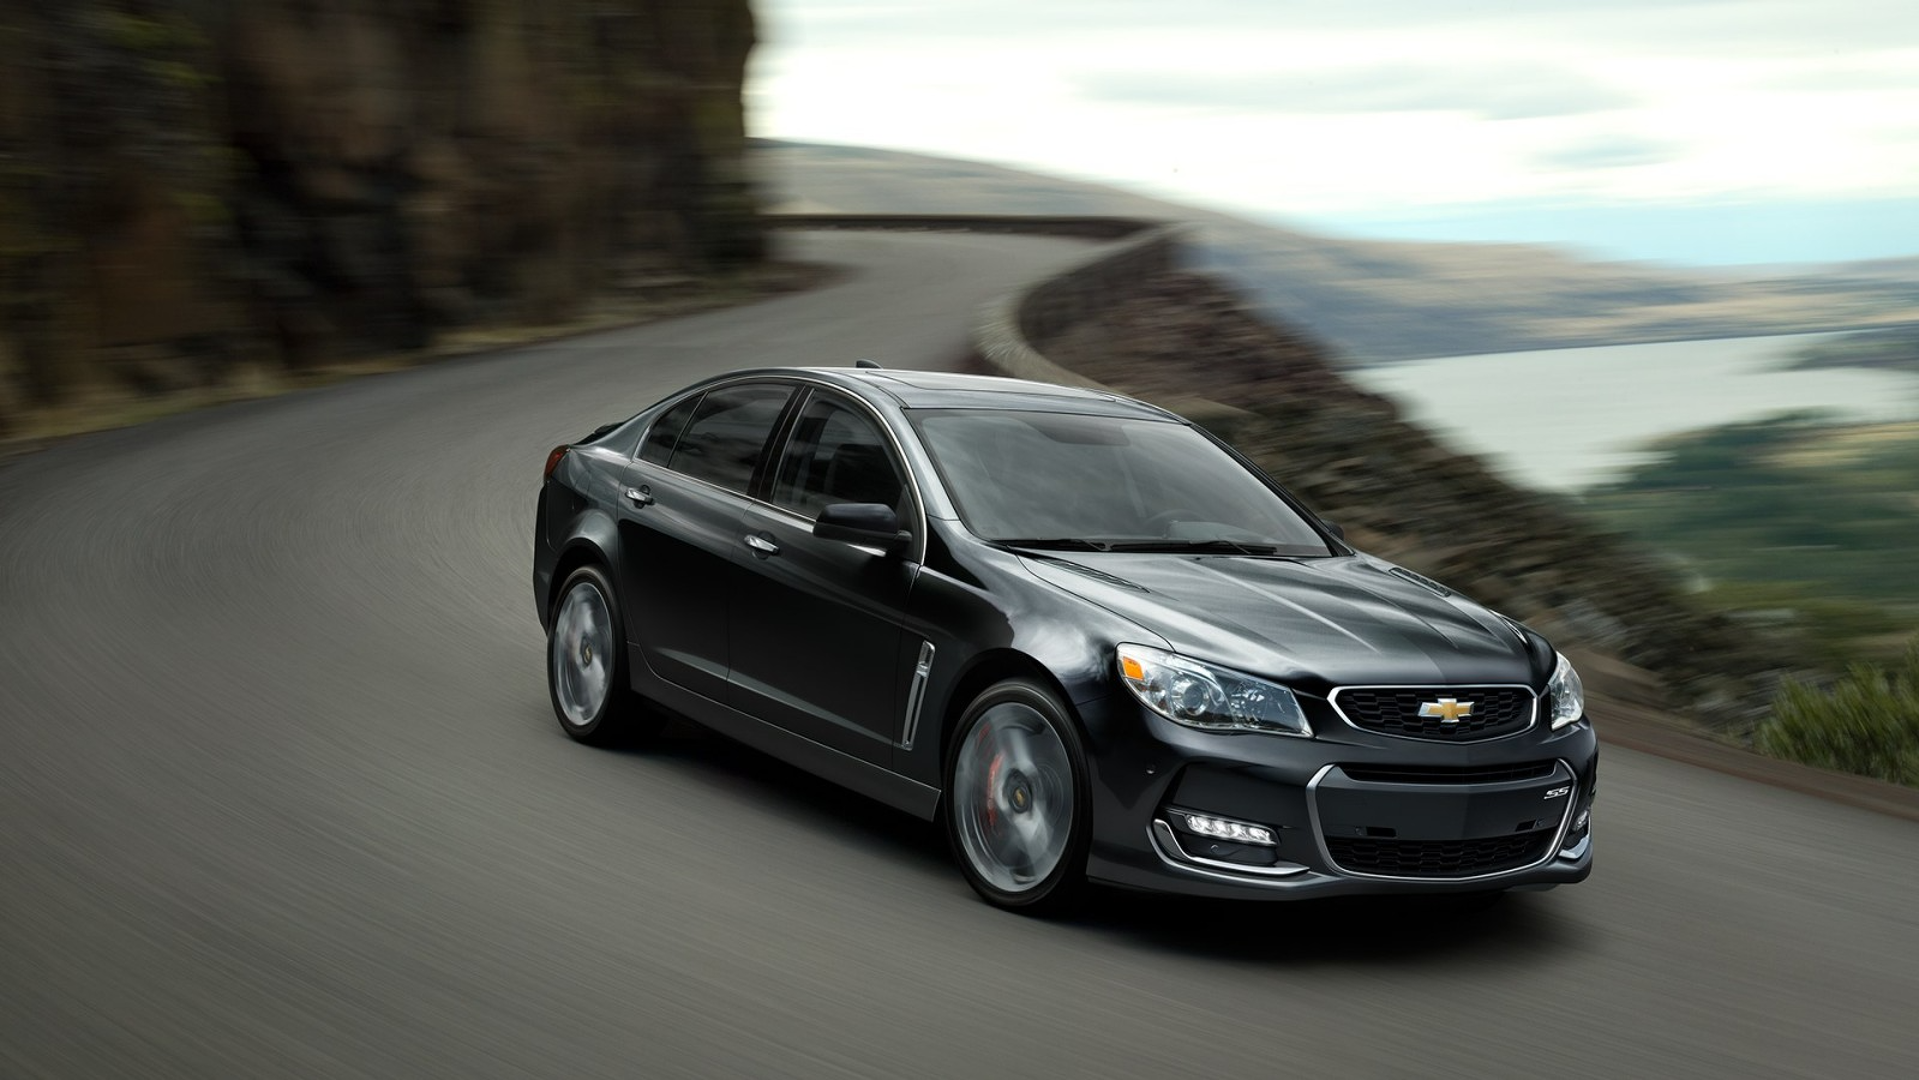 Photo Gallery together with Will 2017 Chevrolet Ss Get Lsa Motor likewise Read in addition Detail 1976 Cadillac Eldorado Used 16027723 likewise 38871. on car door end